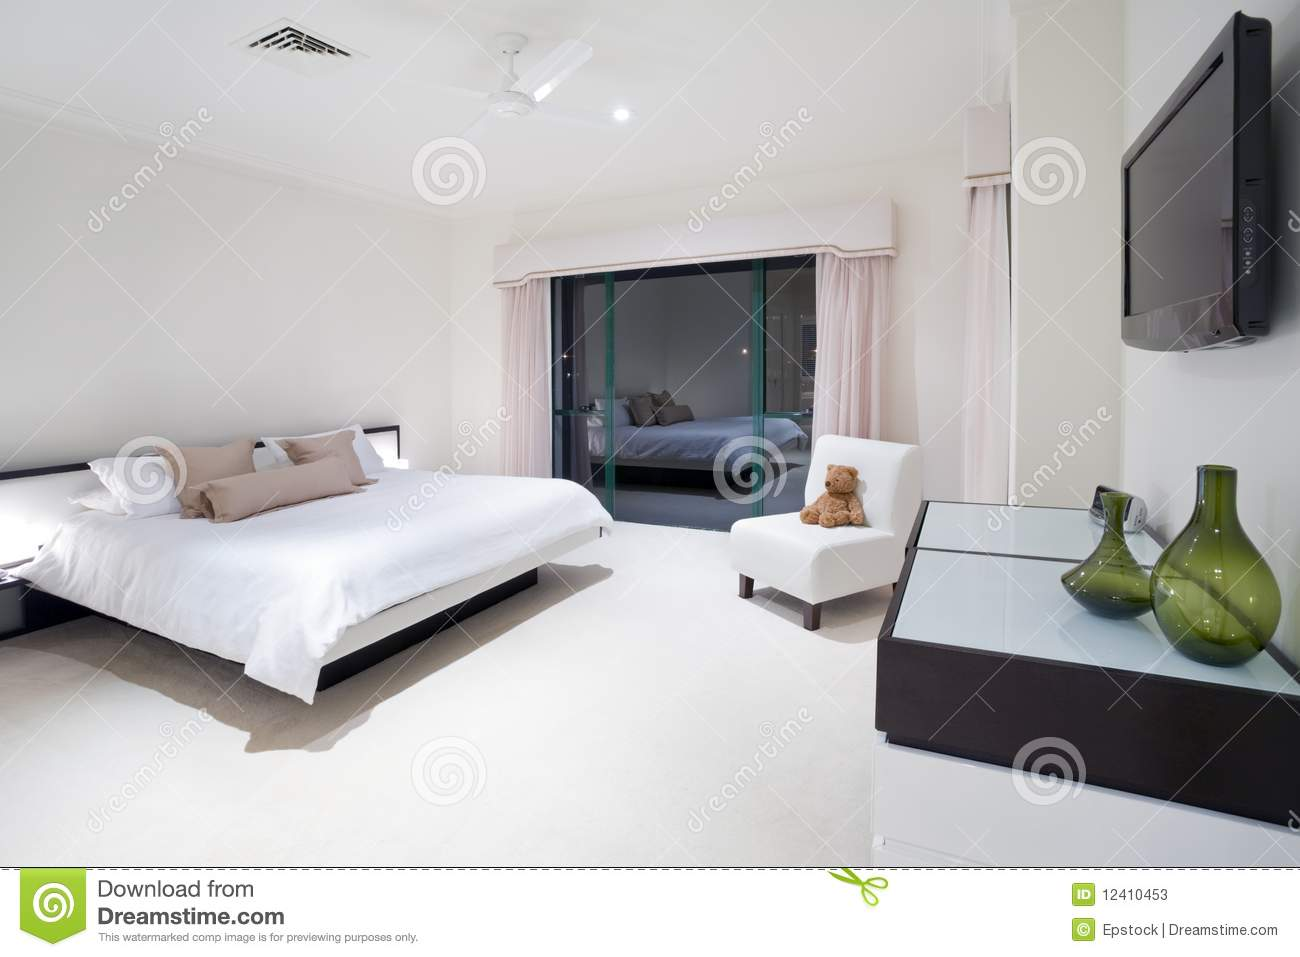 Master Bedroom In Luxury Mansion Stock Image - Image of ...